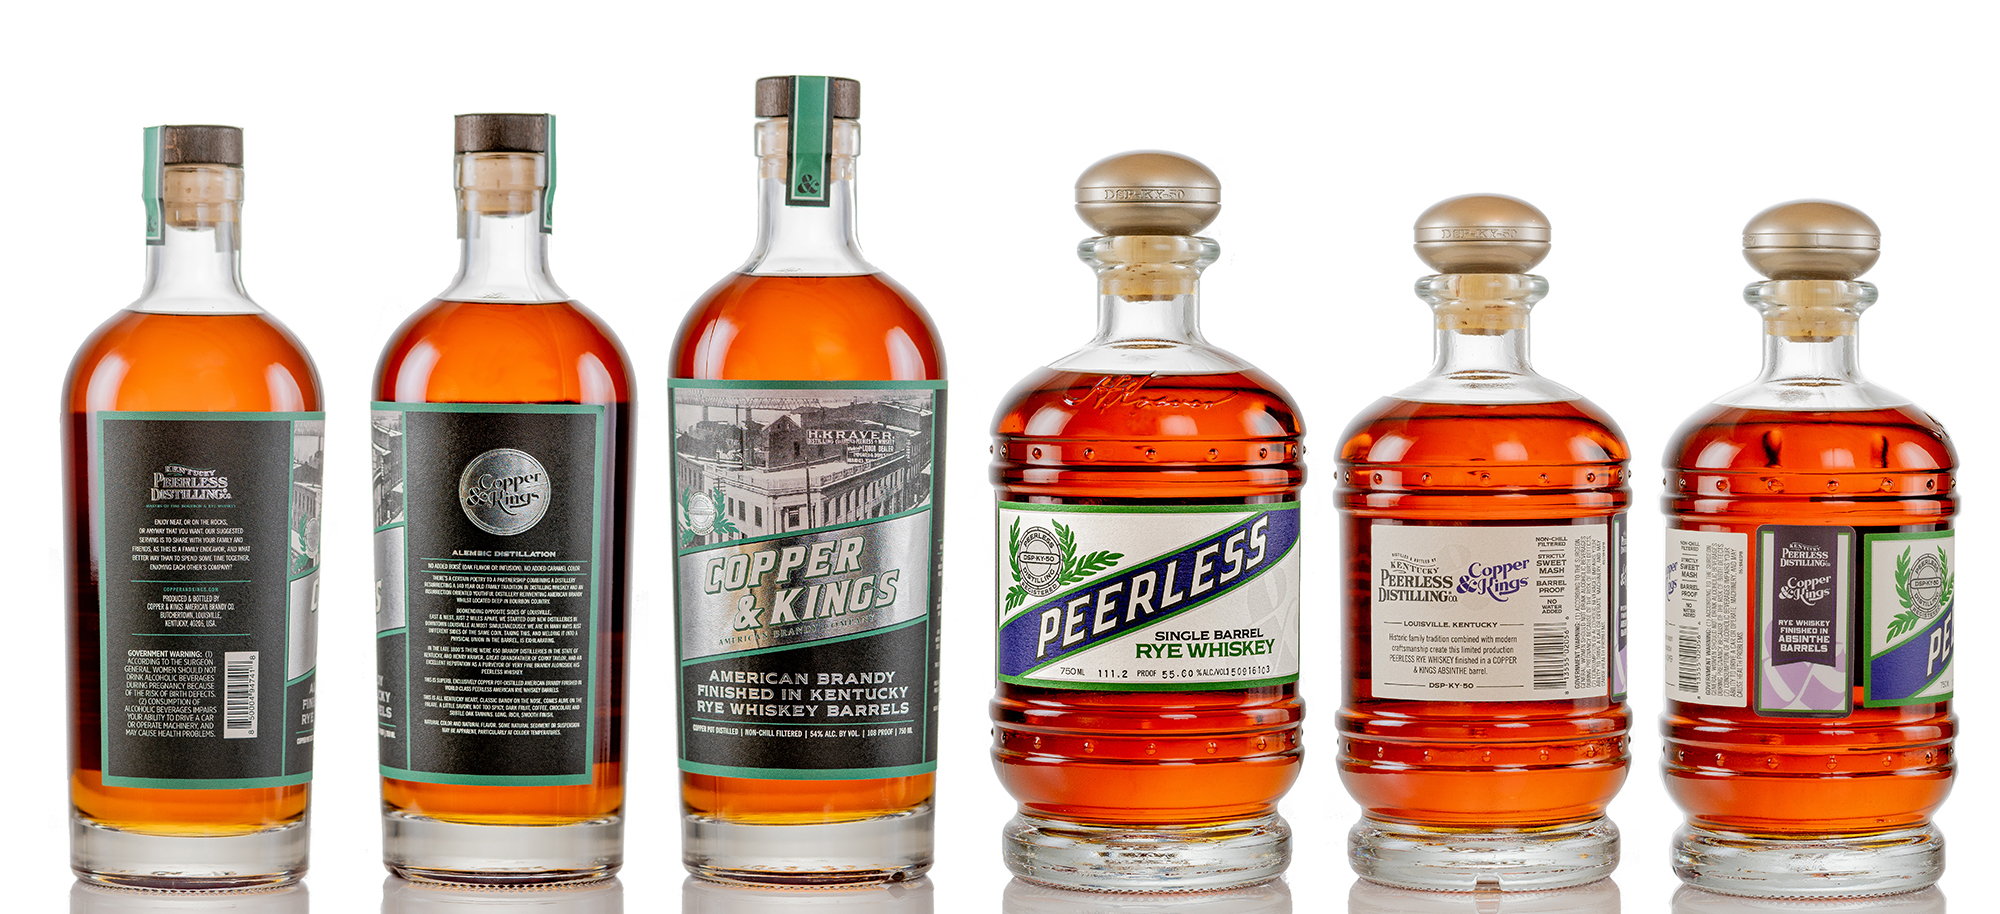 Copper & Kings and Peerless Distilling